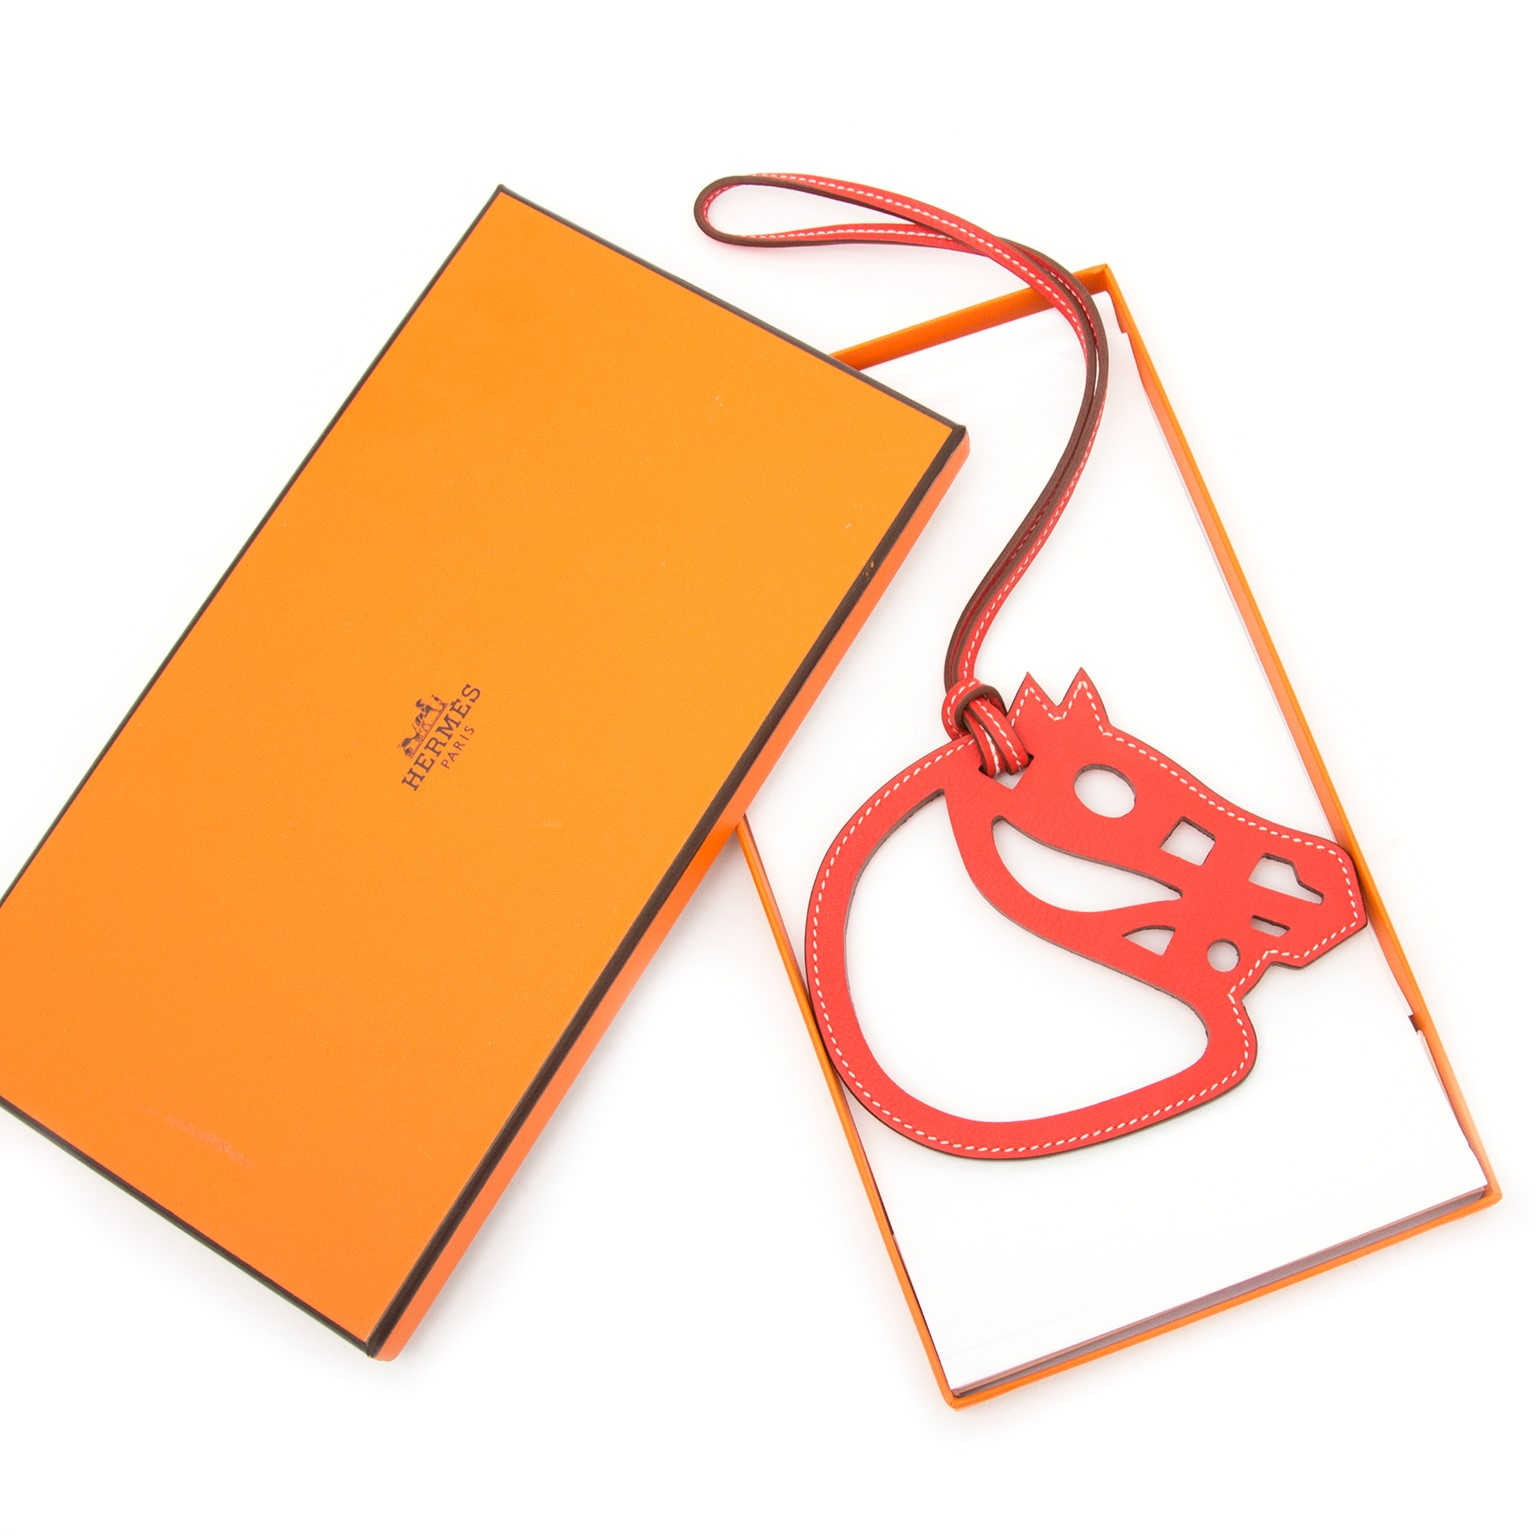 Vintage Hermès red leather ornament for the best price at Labellov webshop. Safe and secure online shopping with 100% authenticity. Vintage Hermes red ornament en cuir pour le meilleur prix.